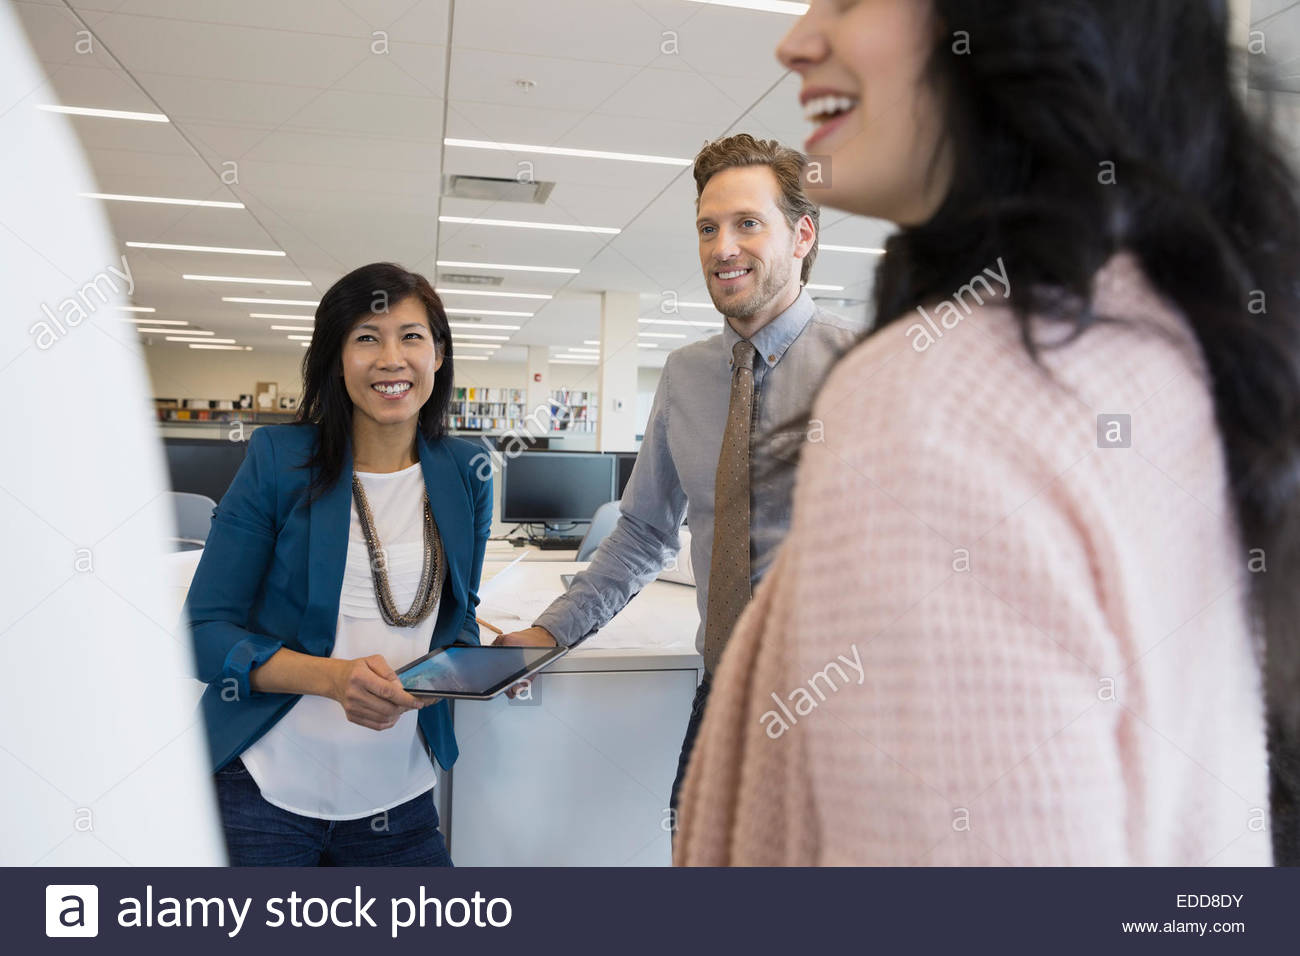 Smiling business people talking in circle Photo Stock